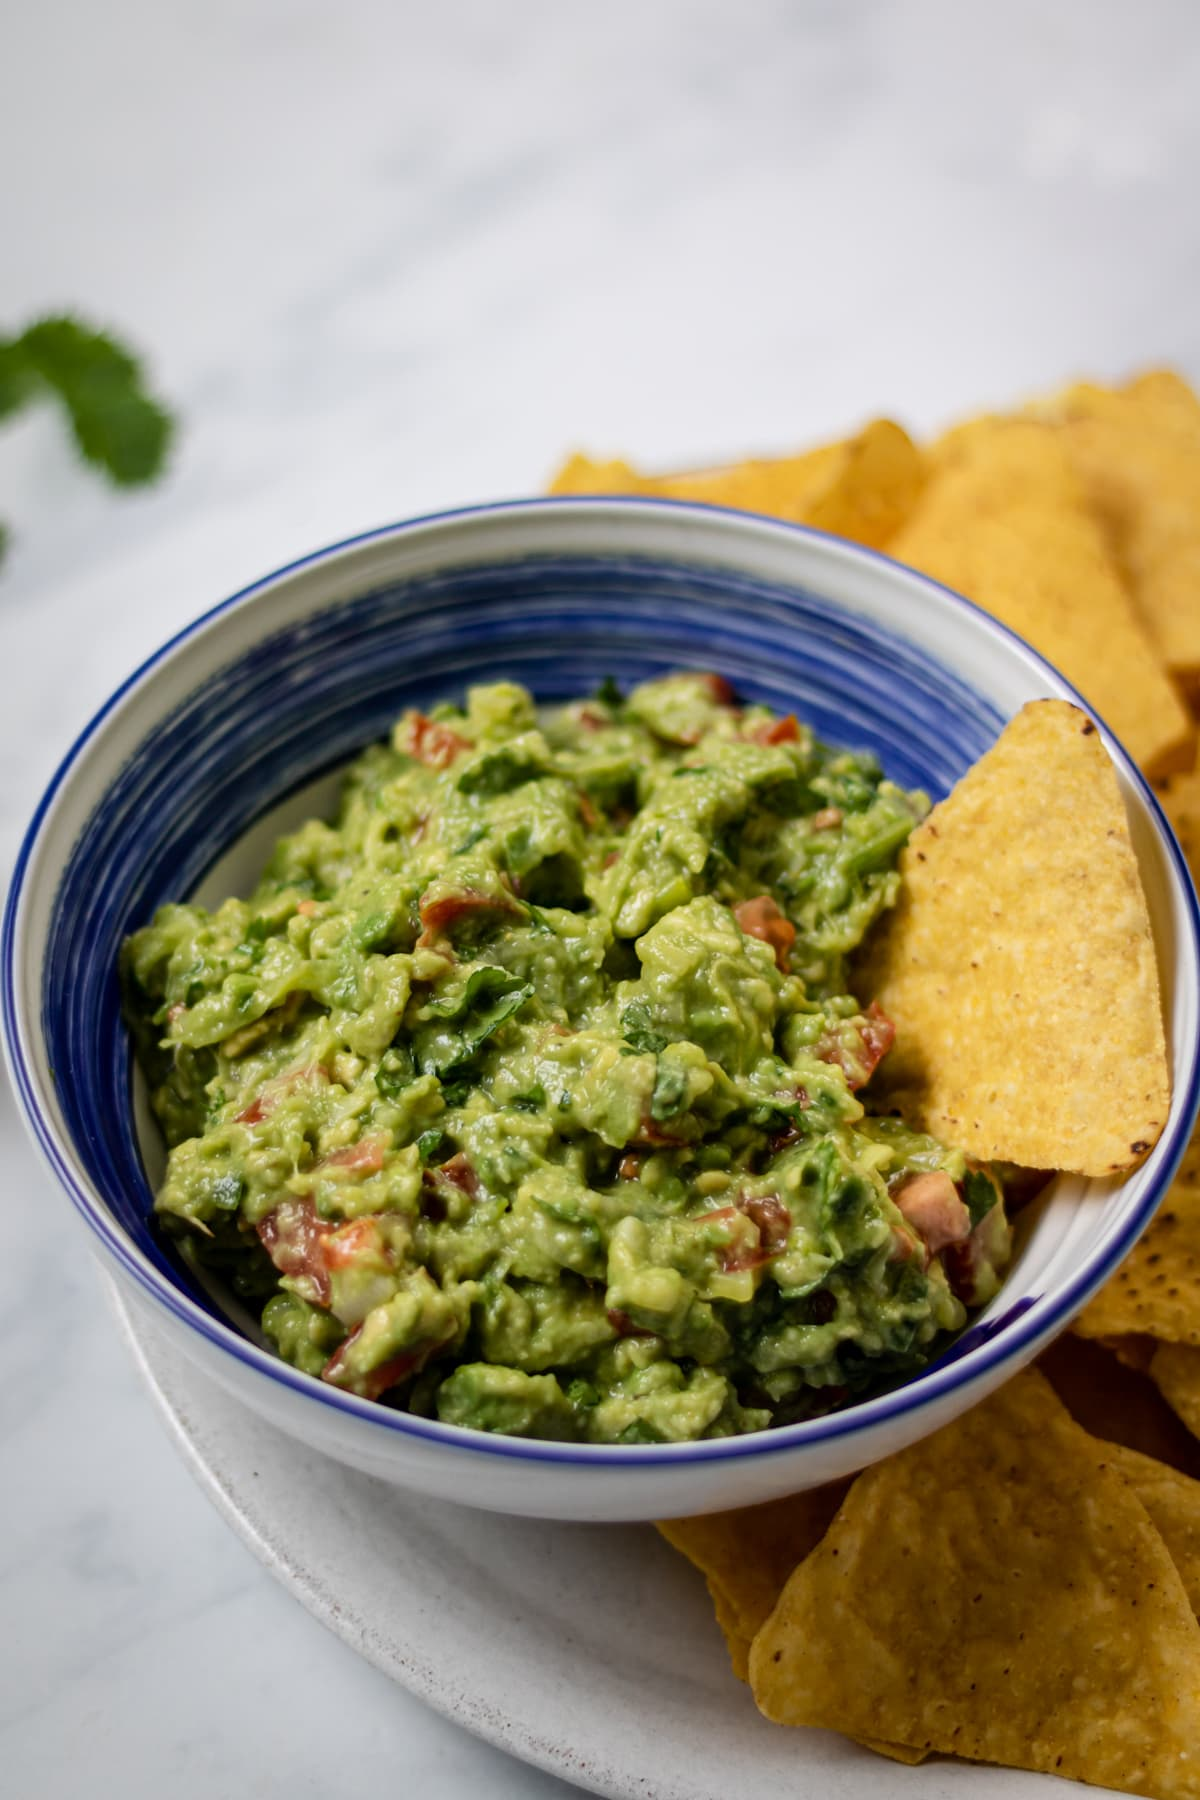 side view of homemade guacamole in a bowl on a plate with tortilla chips.